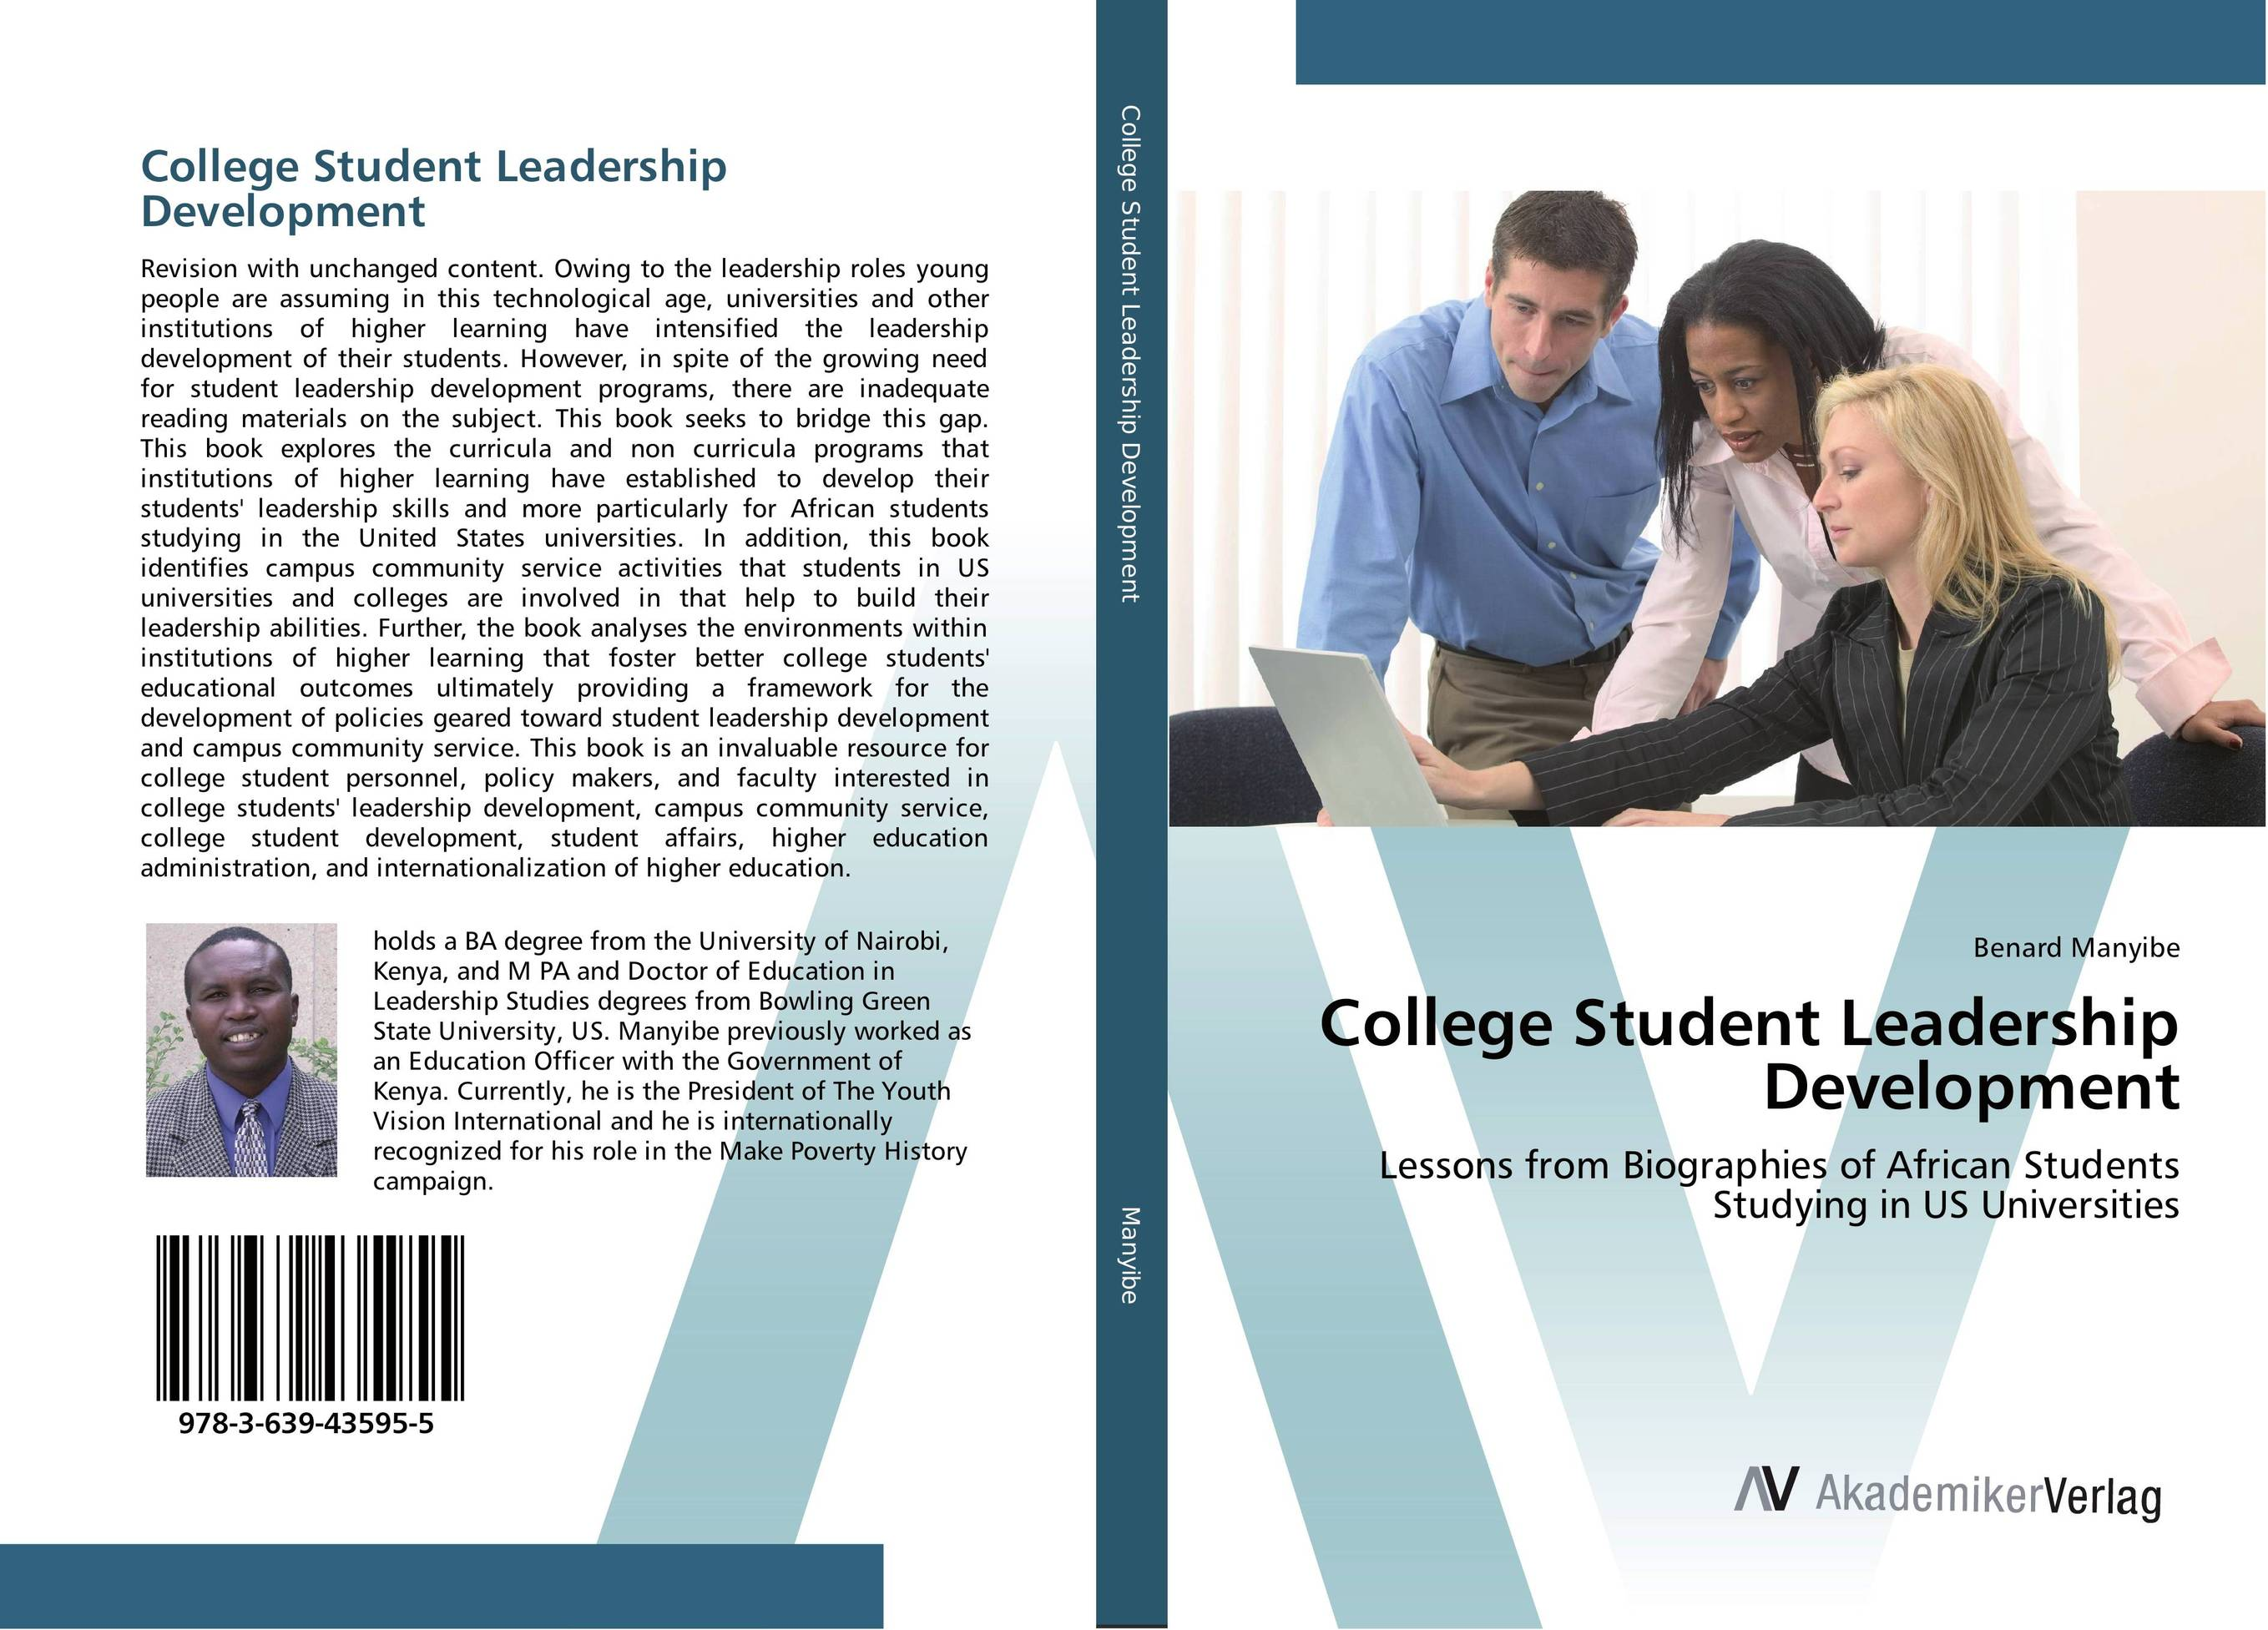 College Student Leadership Development community college students experiences with a leadership program